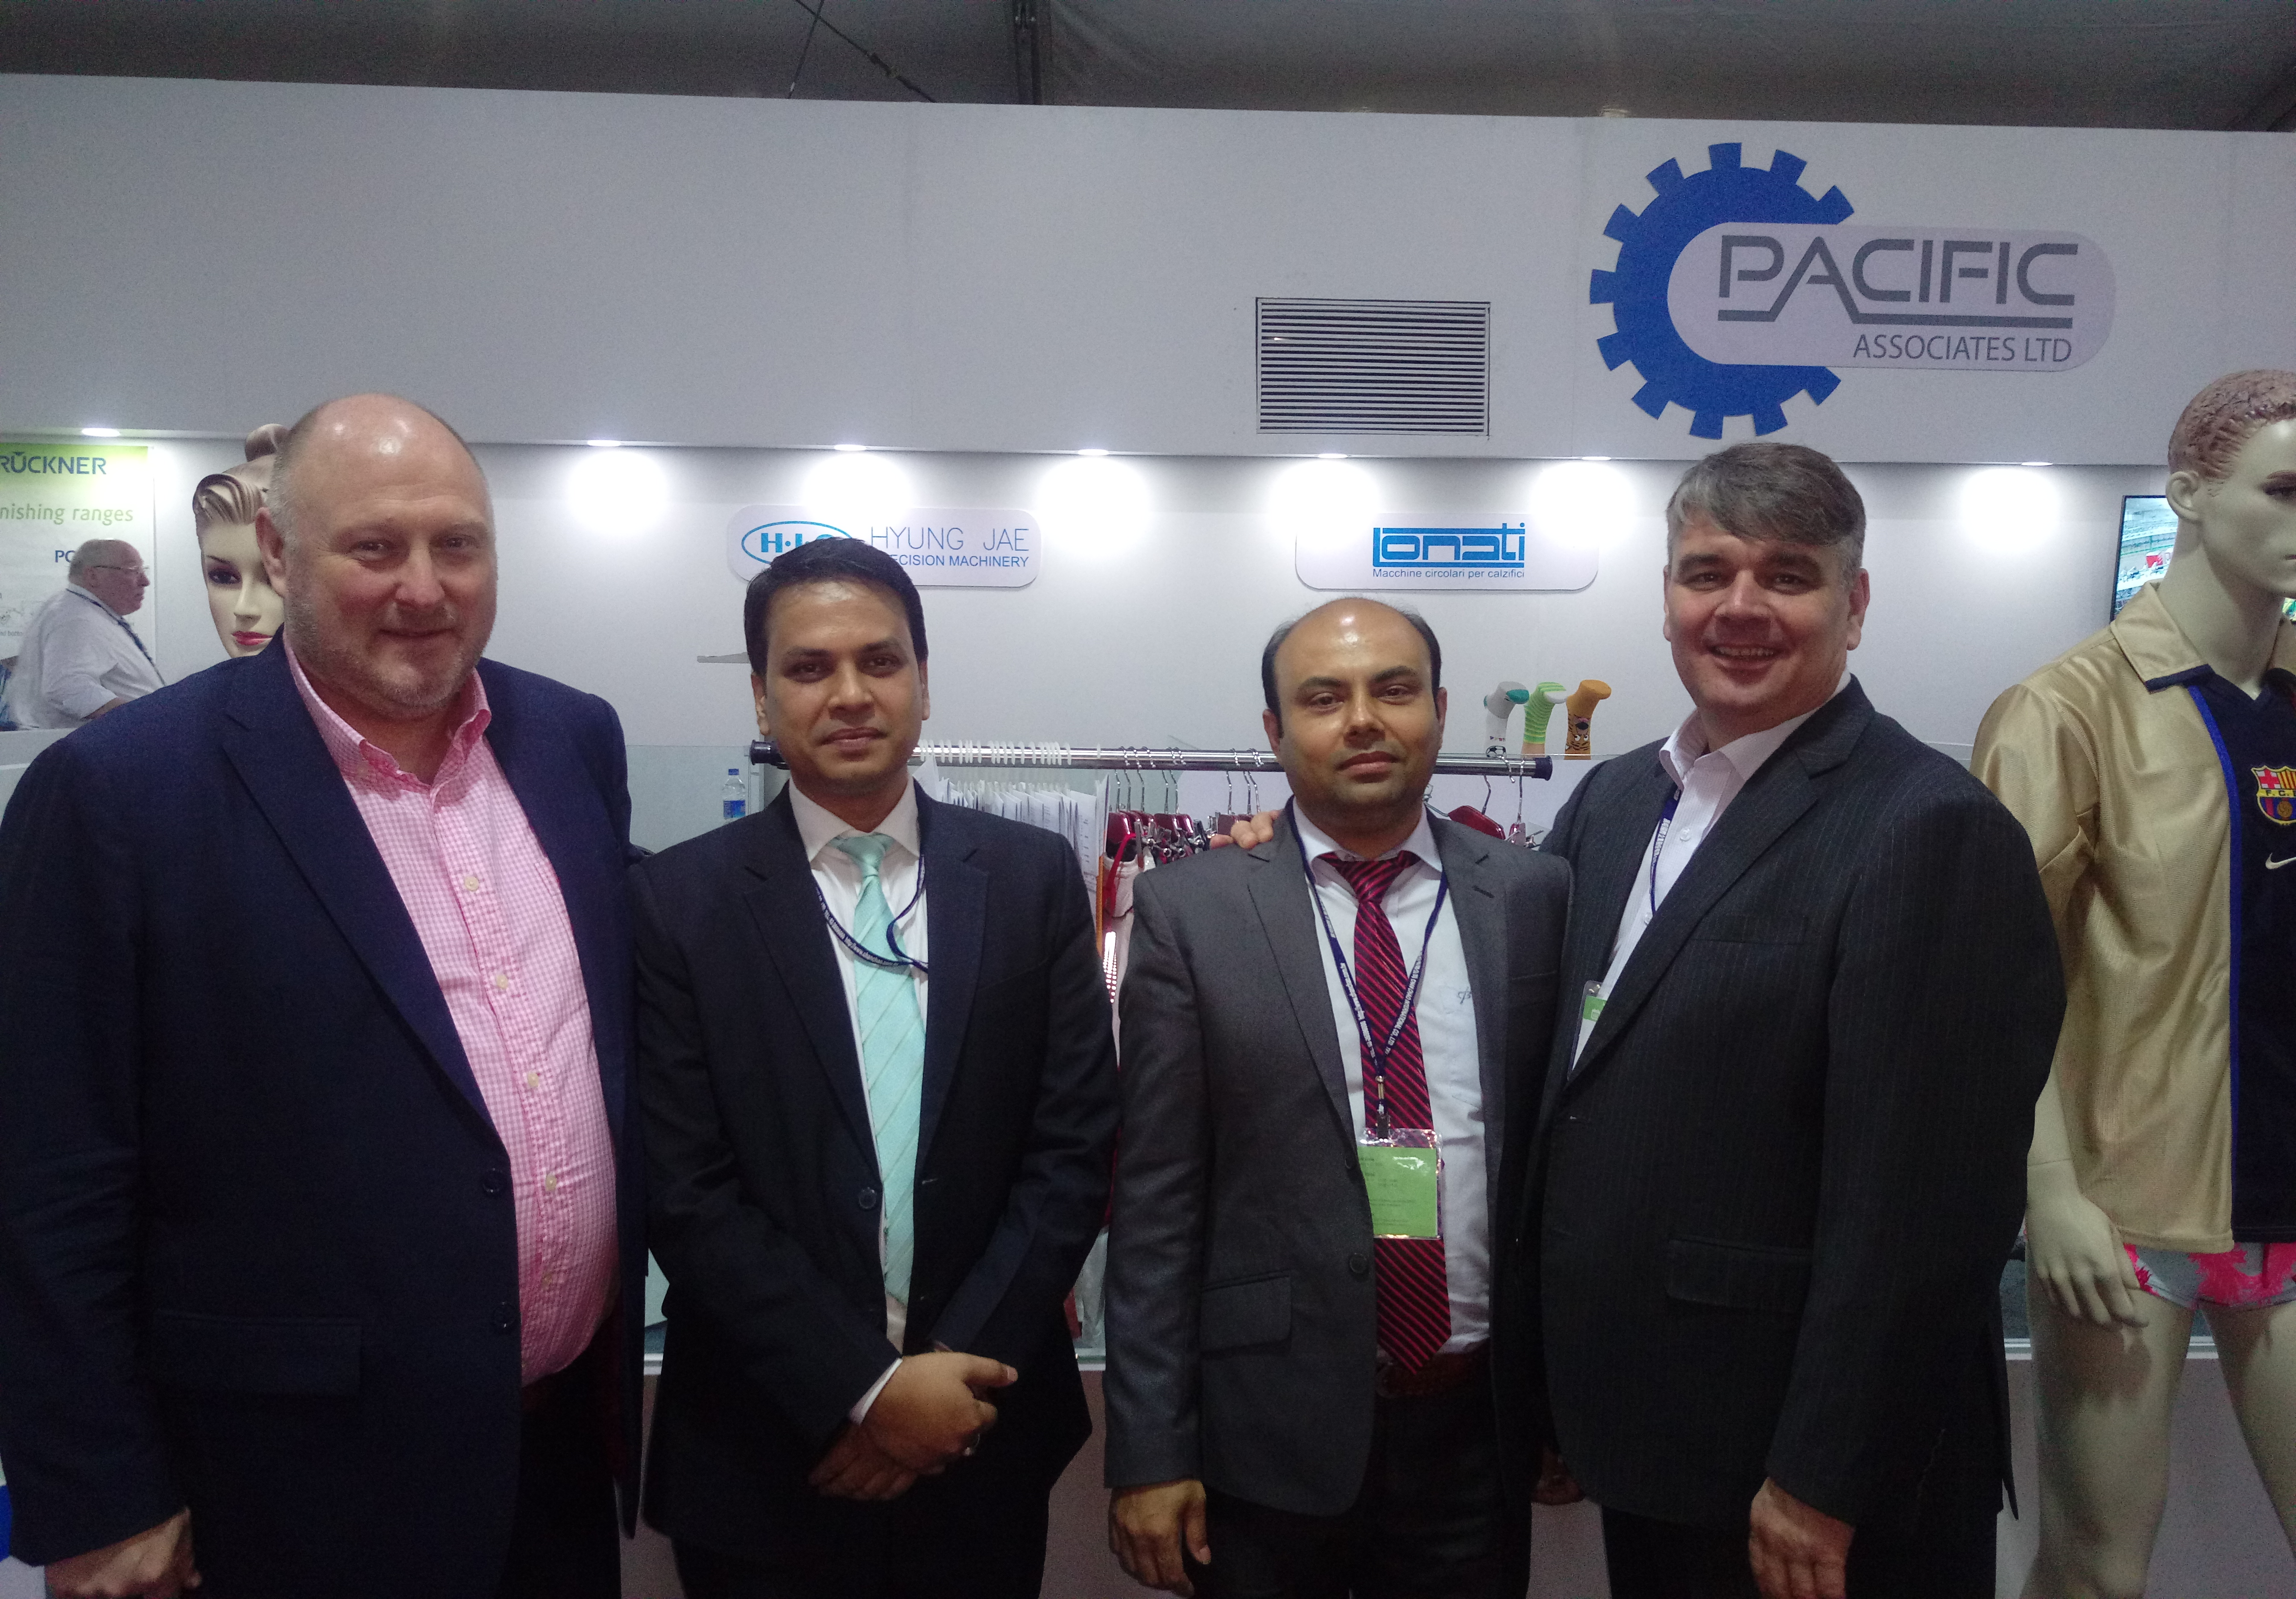 From left to right: Mark Smith from Karl Mayer, Ujjal Sen and Imran Mohaiminul from Pacific Associates, and Peter Frise from Karl Mayer (H.K.) during the DTG Bangladesh.